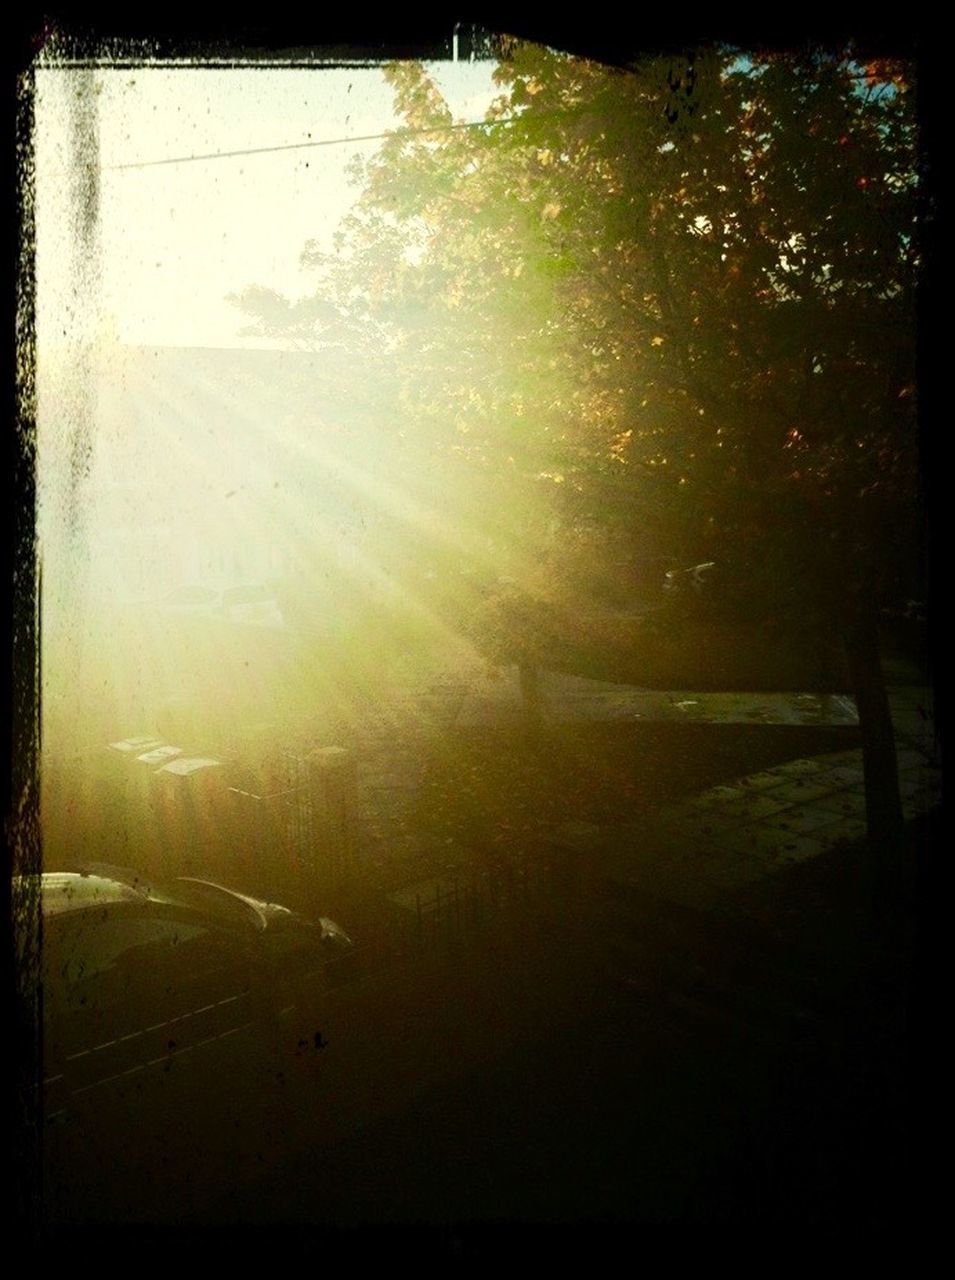 sunlight, tree, nature, no people, forest, day, outdoors, beauty in nature